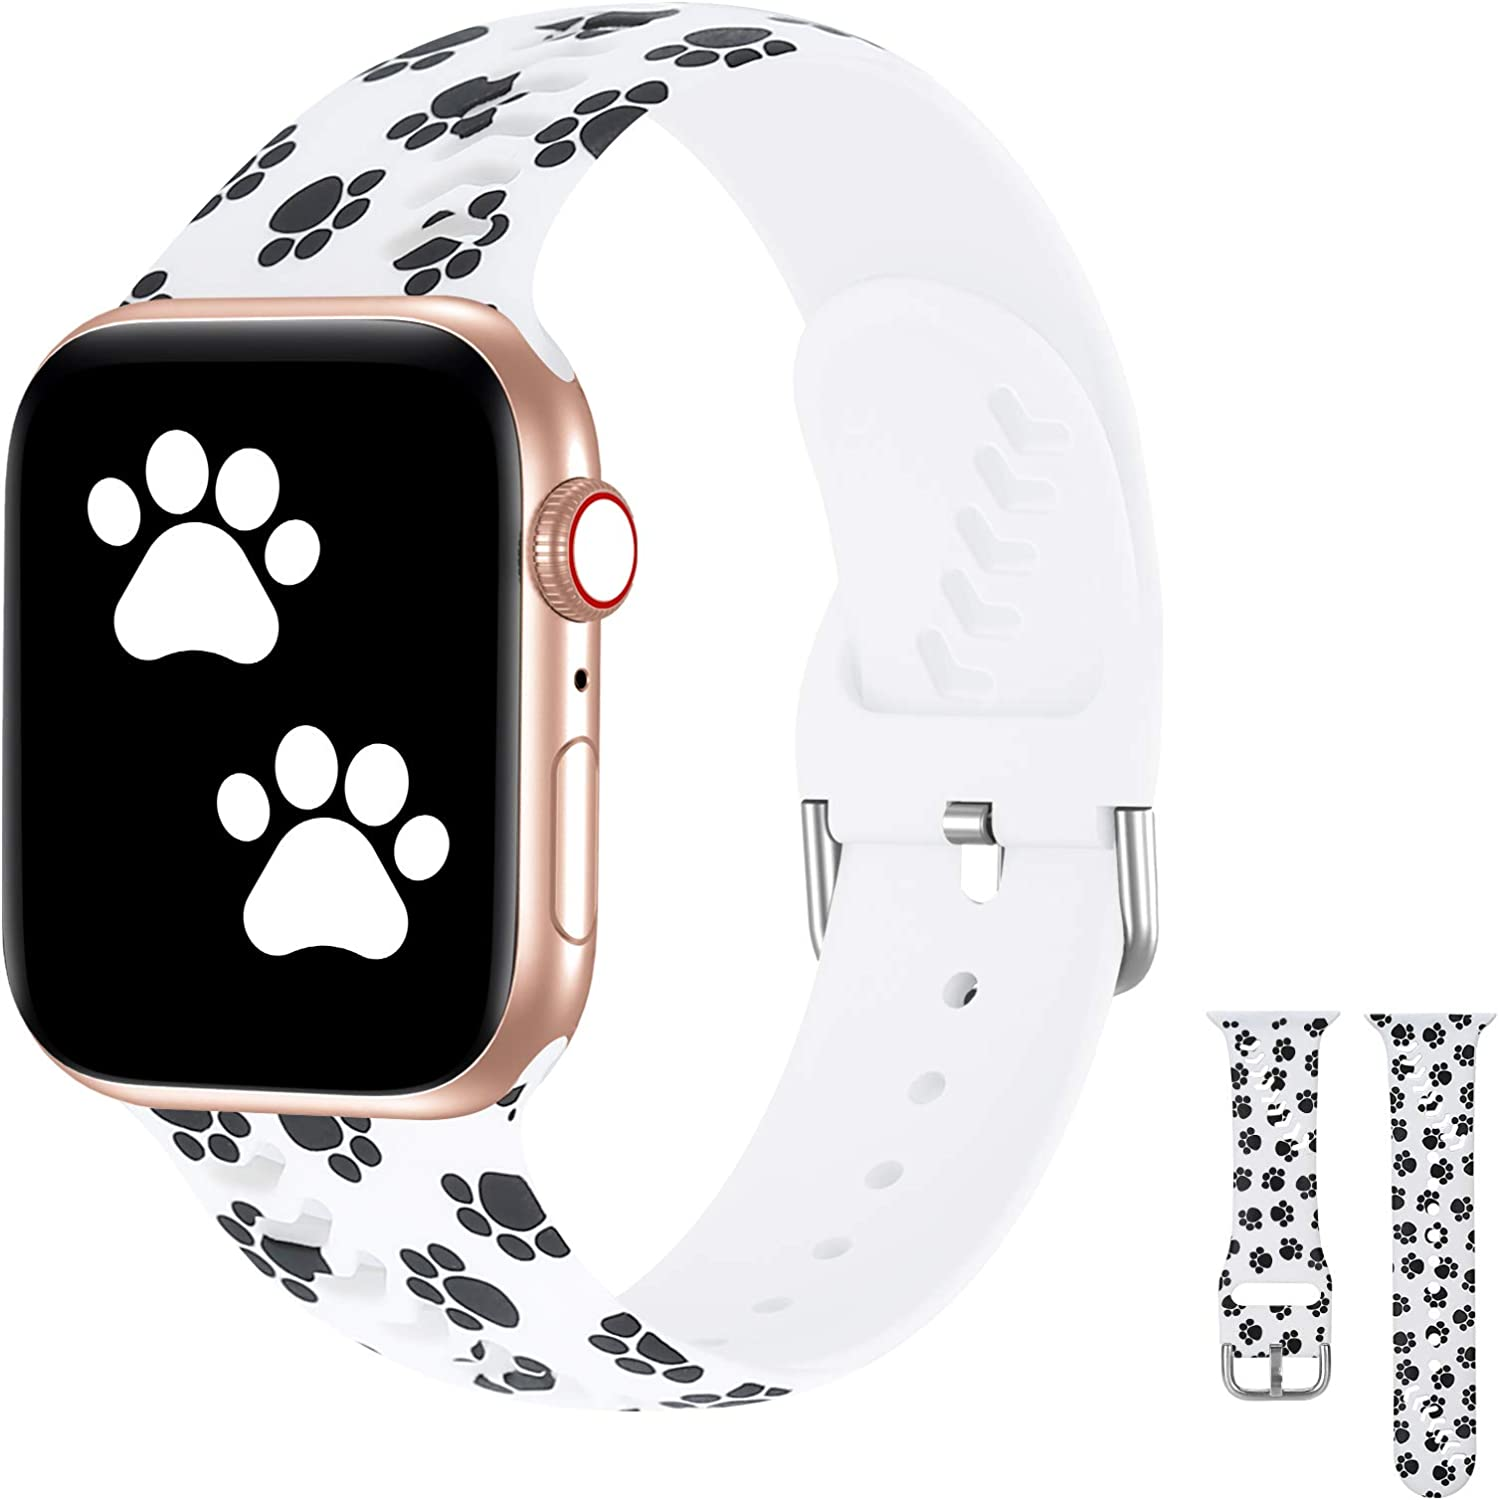 iWabcertoo Sport Band Compatible with Apple Watch 38mm 40mm, Soft Silicone Fadeless Strap Replacement Bands for iWatch SE &Series 6/5/4/3/2/1,Sport Edition Women Men (Dog Paw)